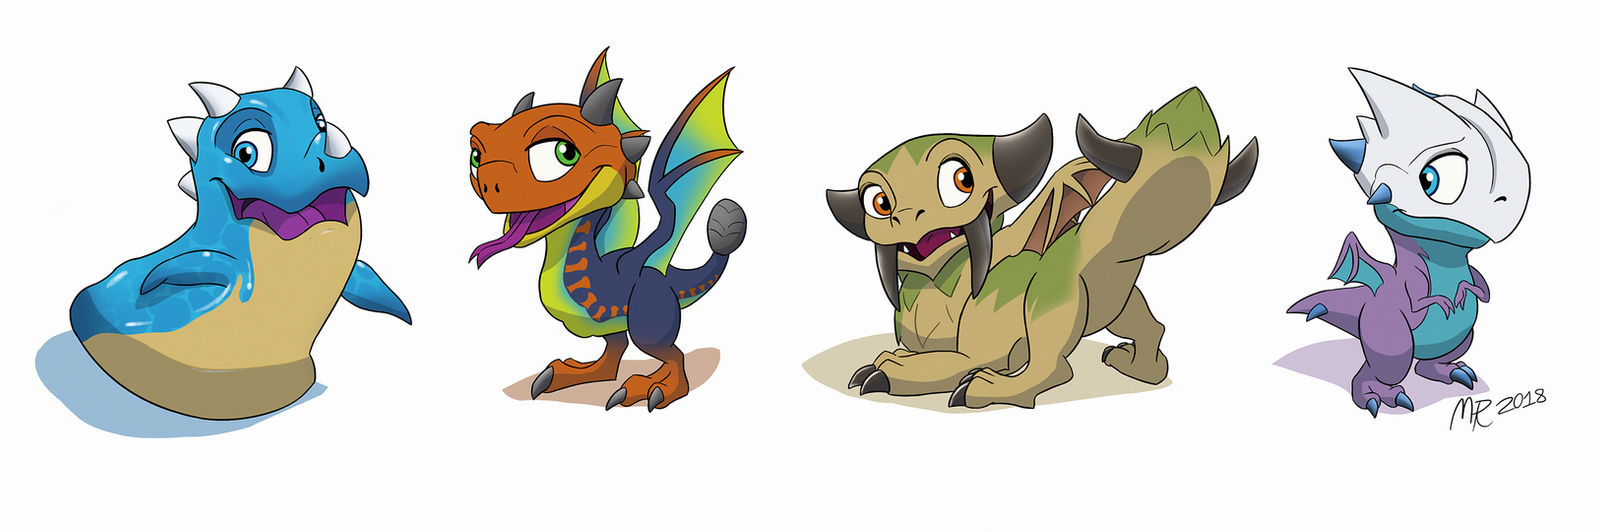 Dragonvale World Little Pack 3 by MightyRaptor on DeviantArt